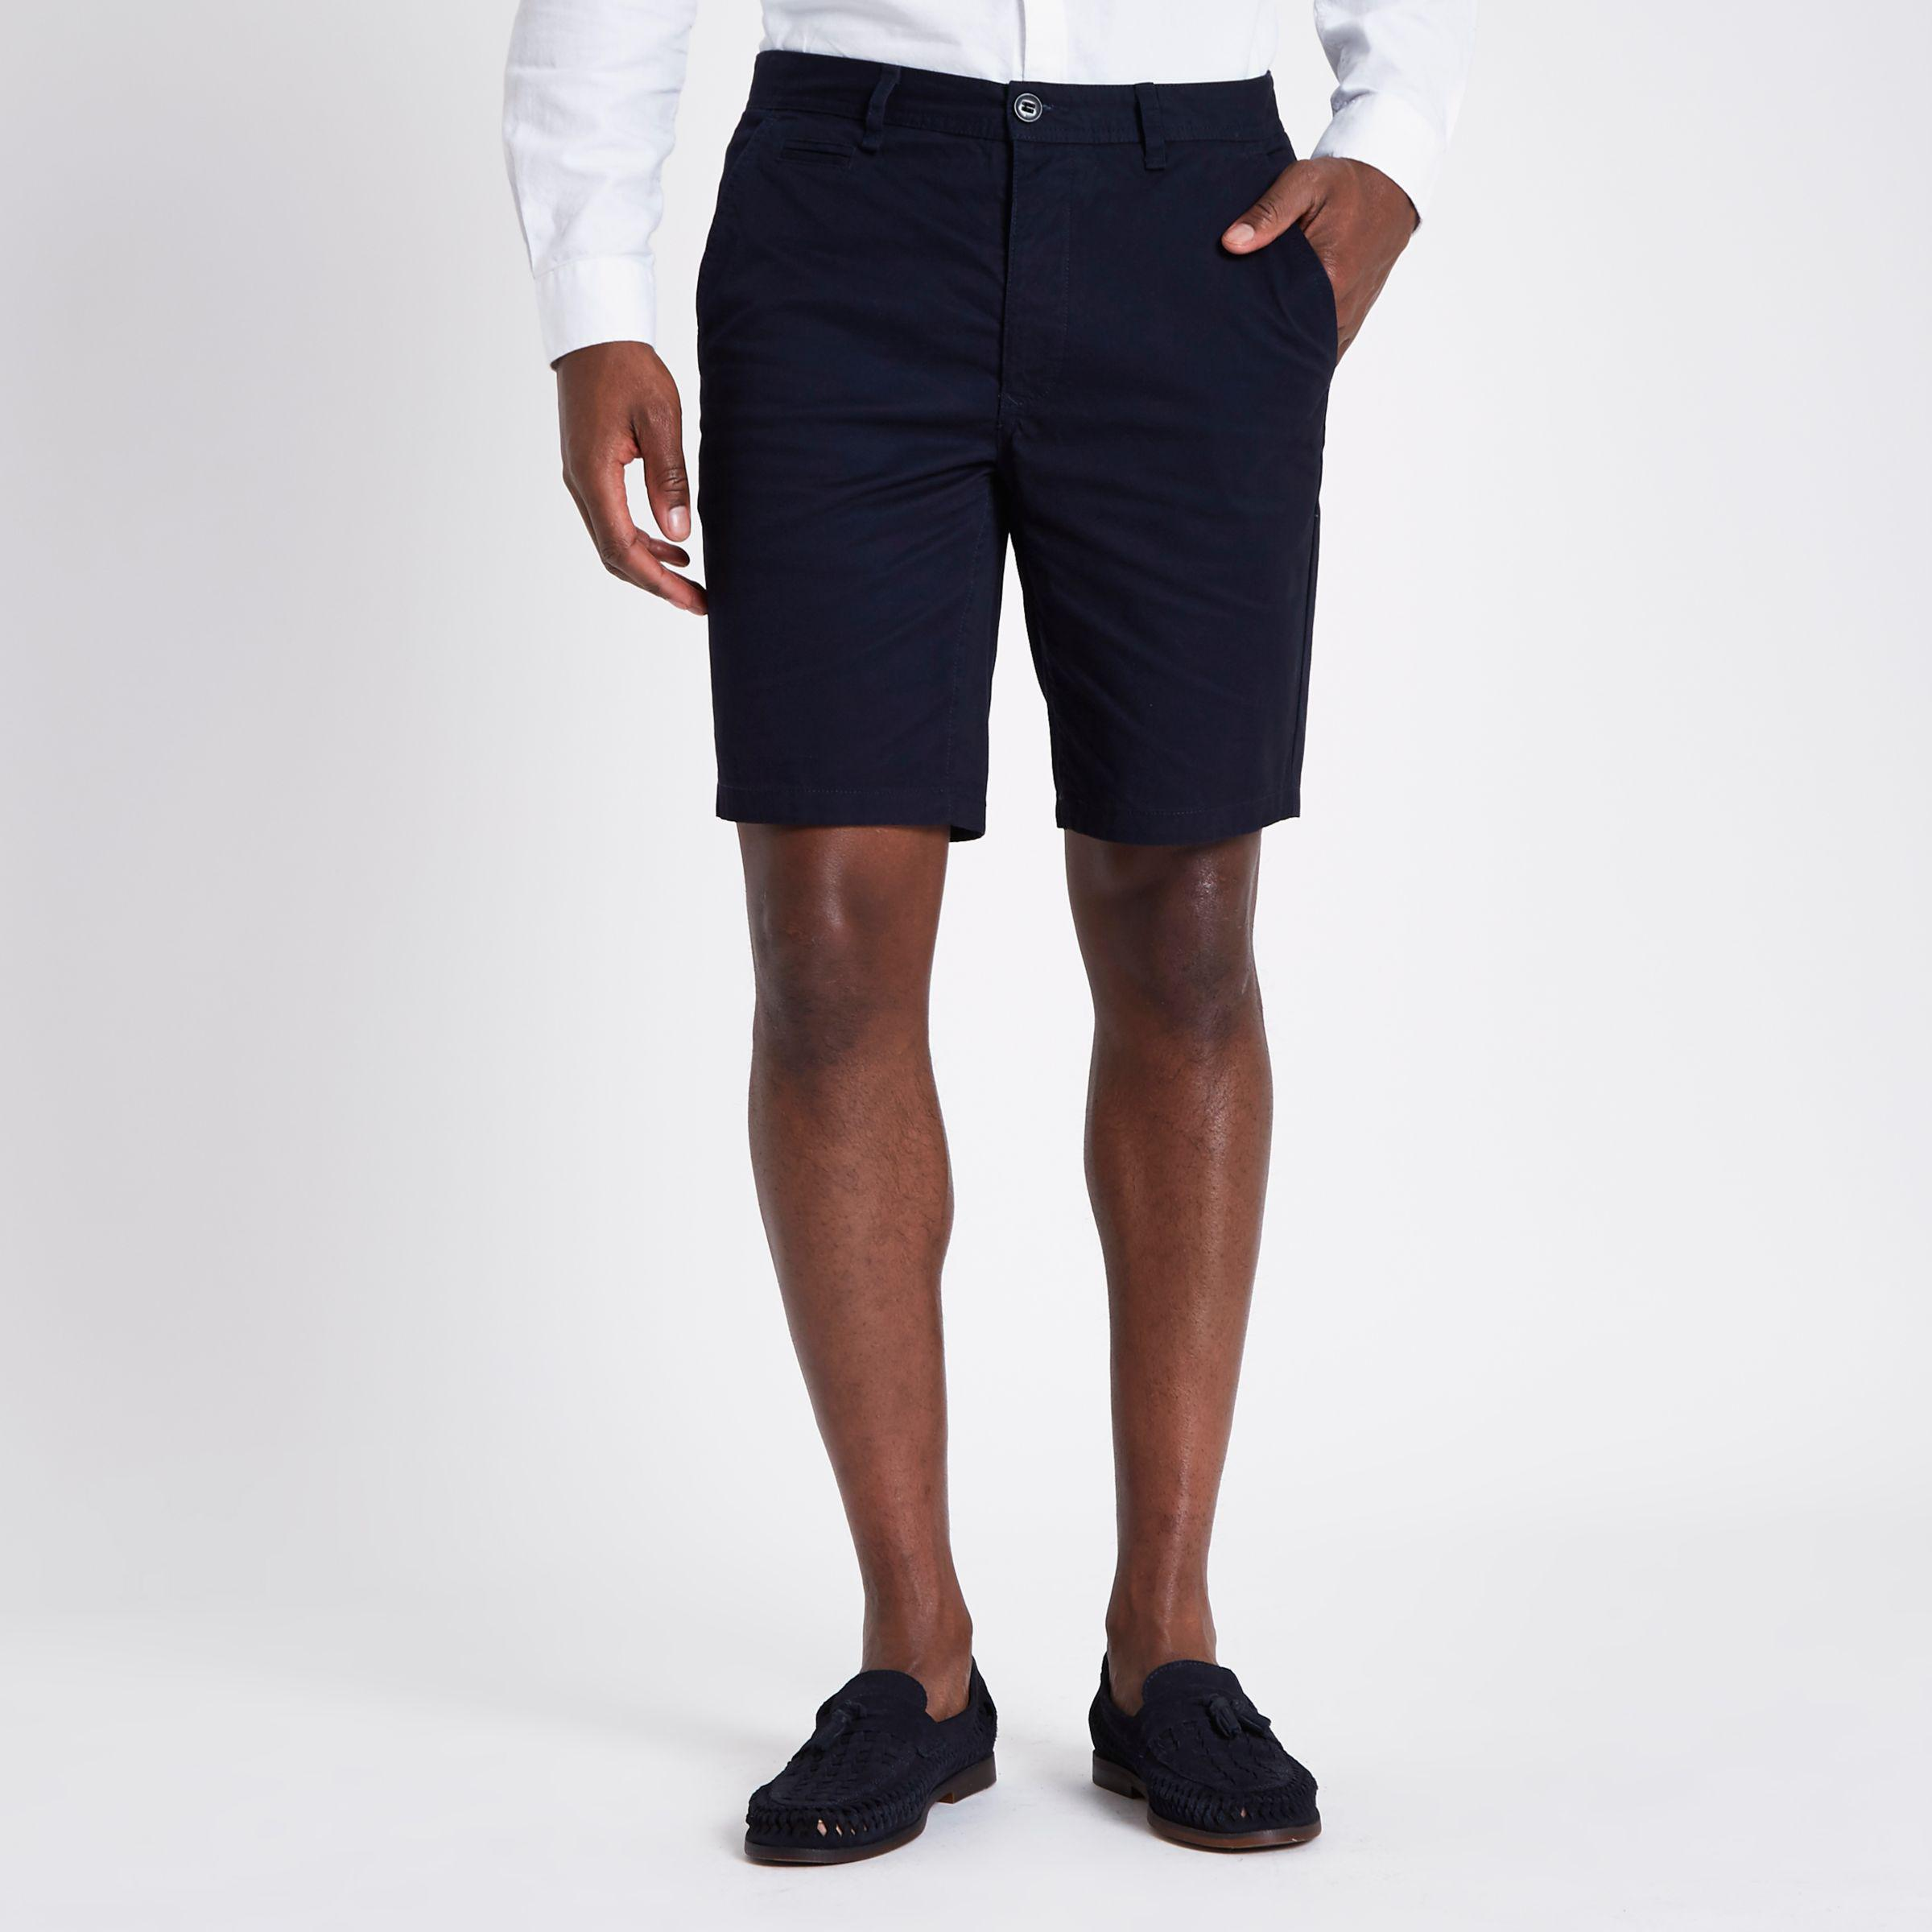 Mens Navy and tan slim fit chino shorts multipack River Island Clearance Pay With Visa iVzGGsf